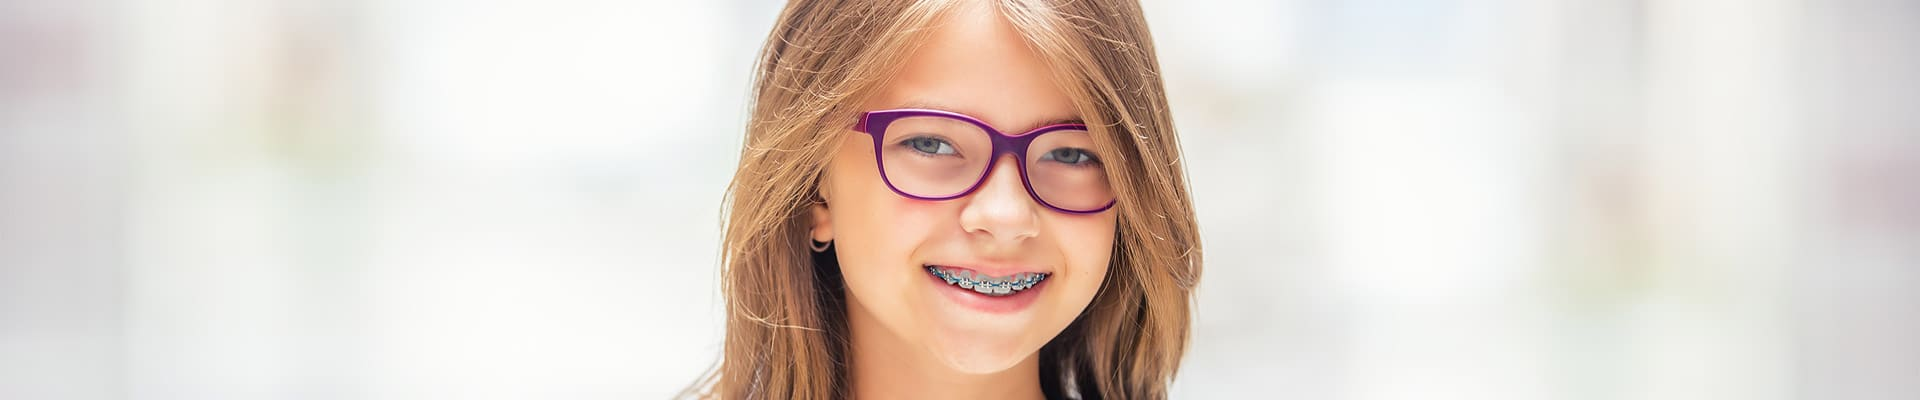 Children's Braces Orthodontics by Dr. Ken Lawrence Mentor OH